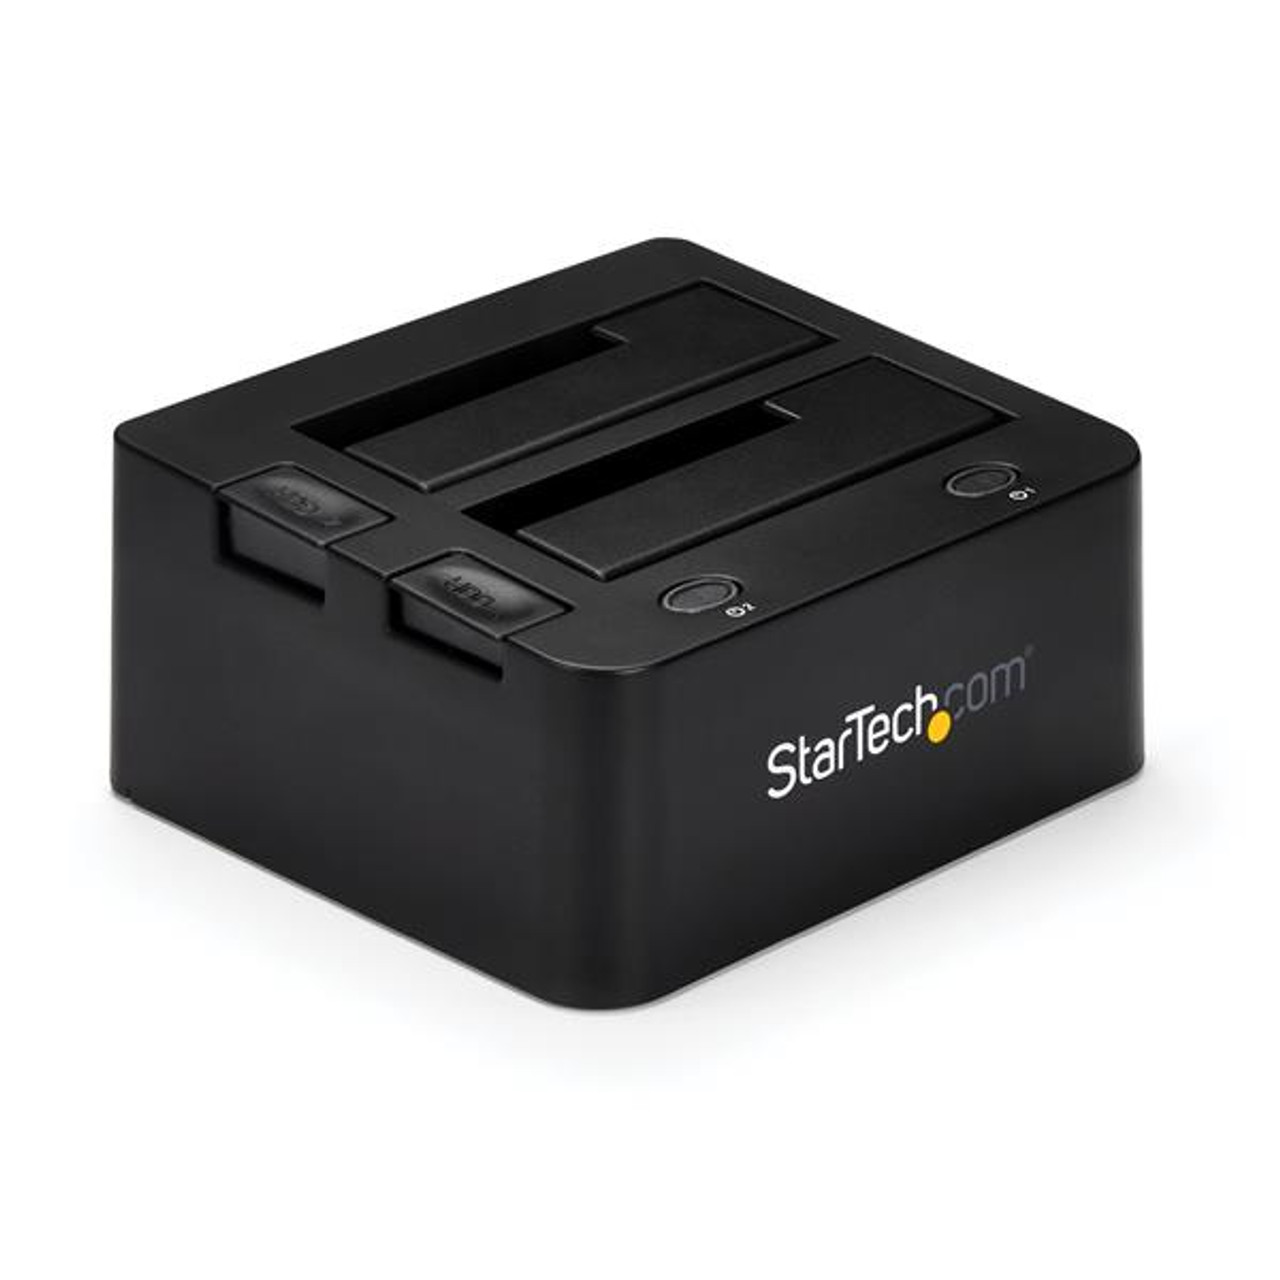 Image for StarTech USB 3.0 universal HDD Dock - 2.5/3.5in SATA & IDE - UASP CX Computer Superstore